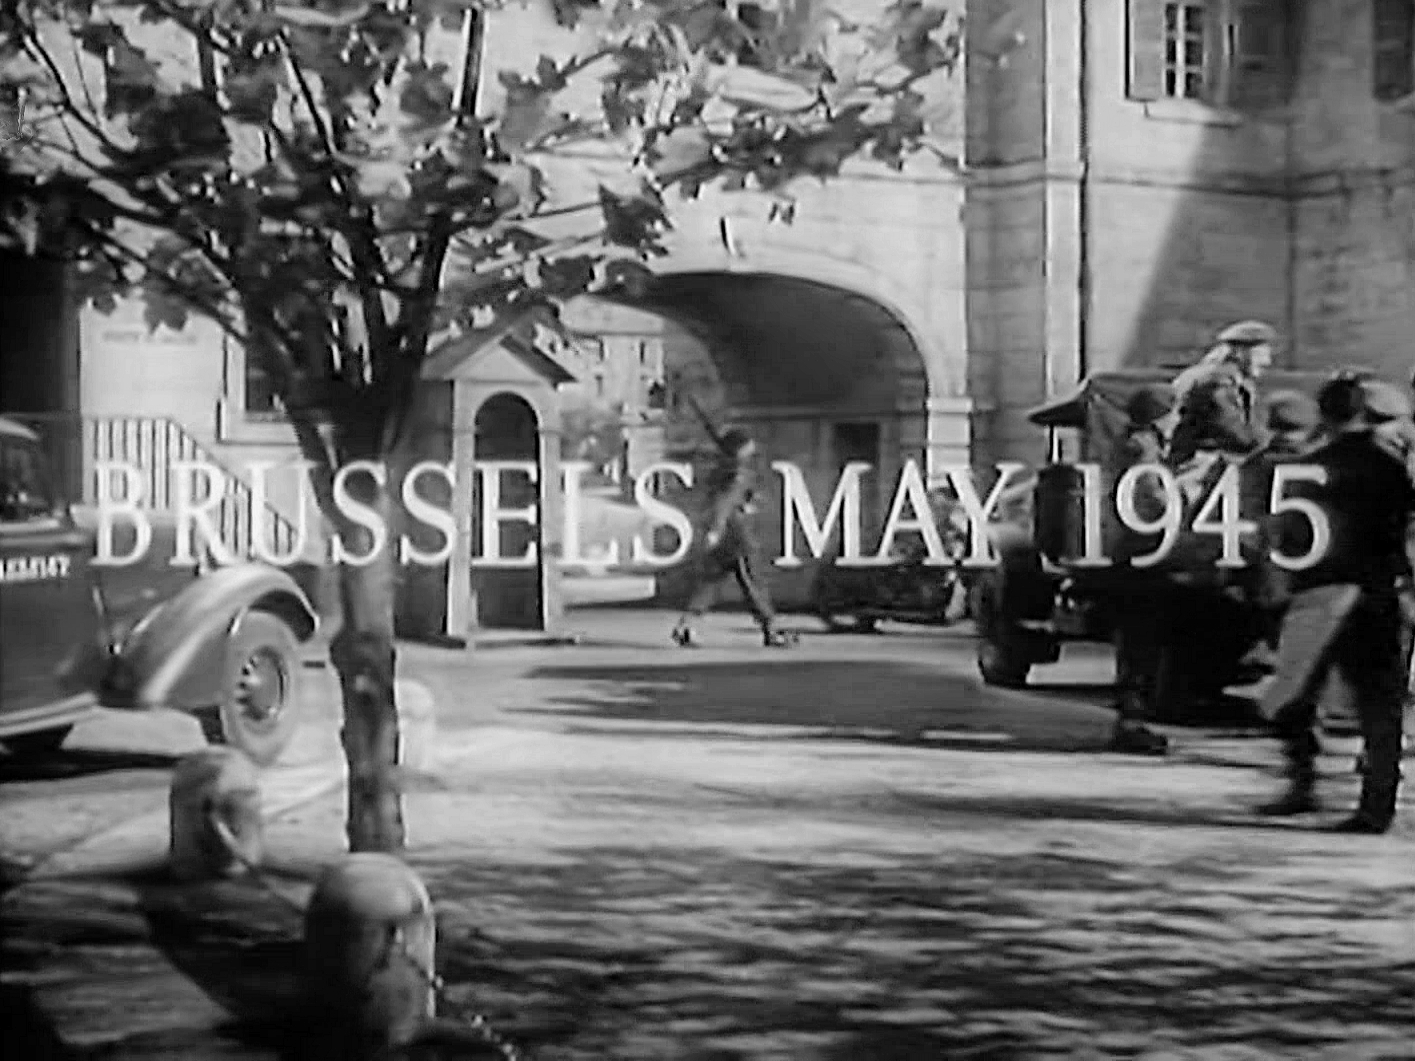 Main title from The Chiltern Hundreds (1949) (12). Brussels, May 1945